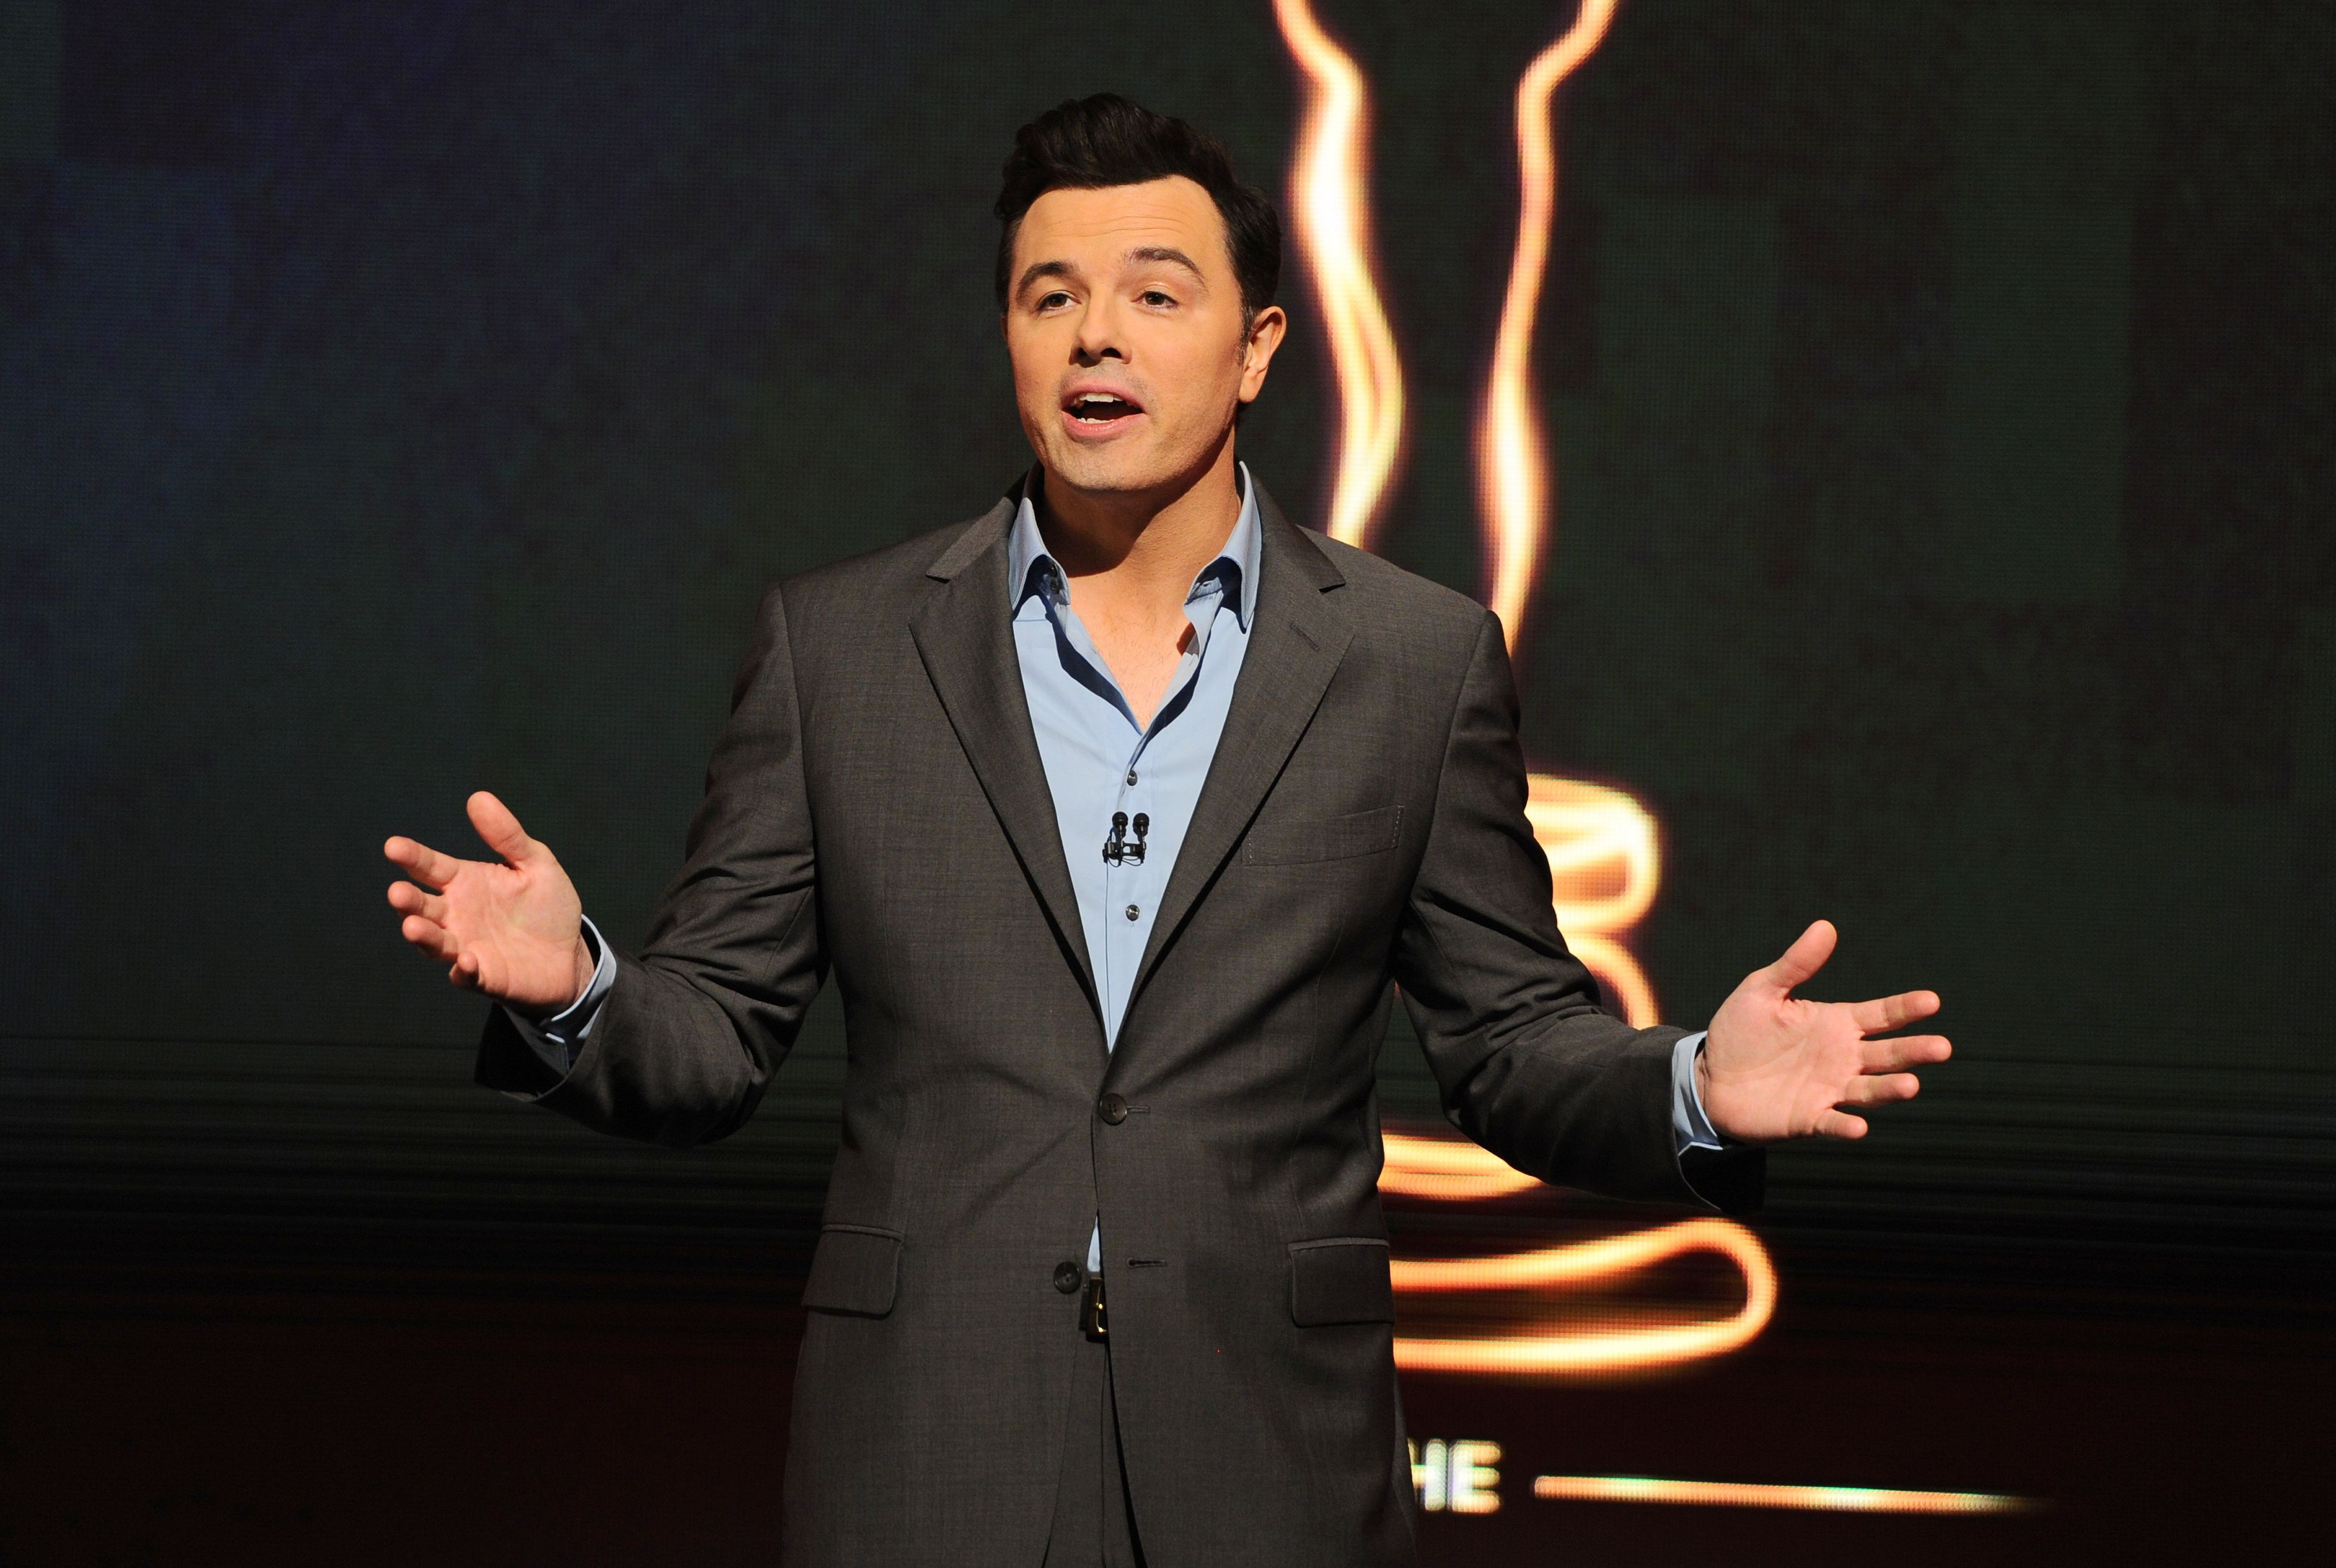 Seth McFarlane Says Fox News 'Makes Me Embarrassed to Work for This Company'